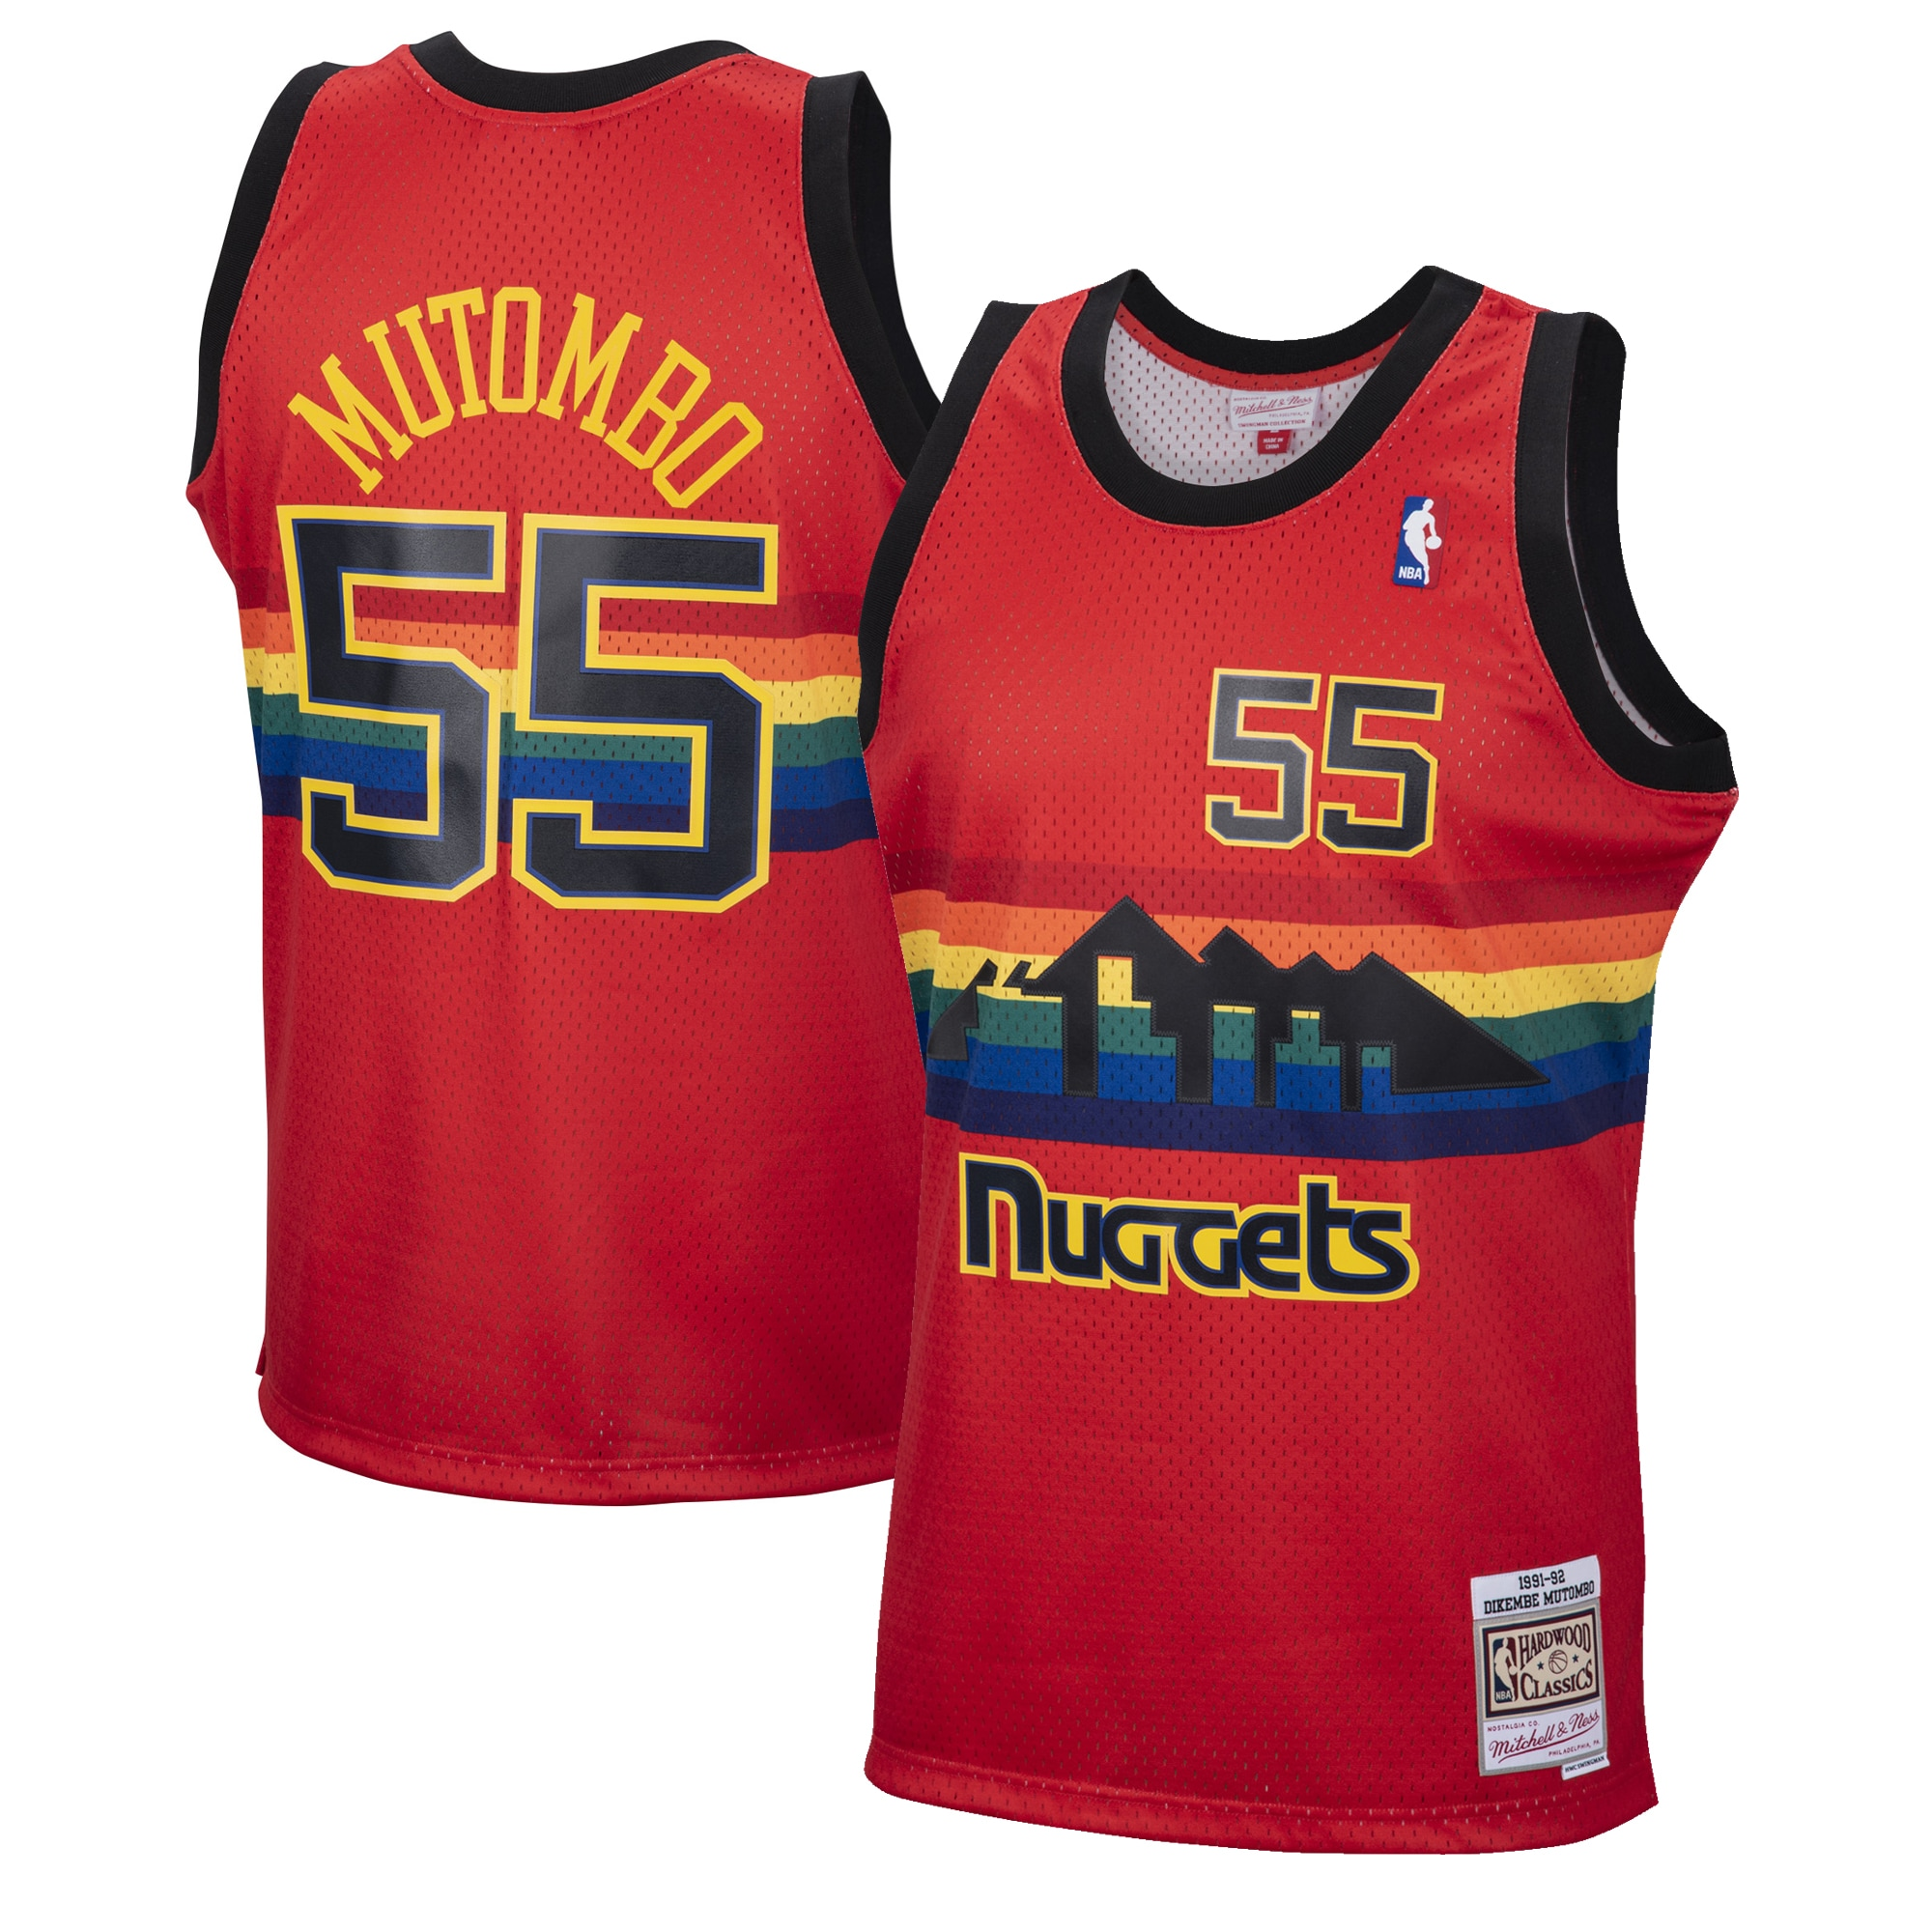 Dikembe Mutombo Denver Nuggets Mitchell & Ness 1991-92 Hardwood Classics Reload Swingman Jersey - Red